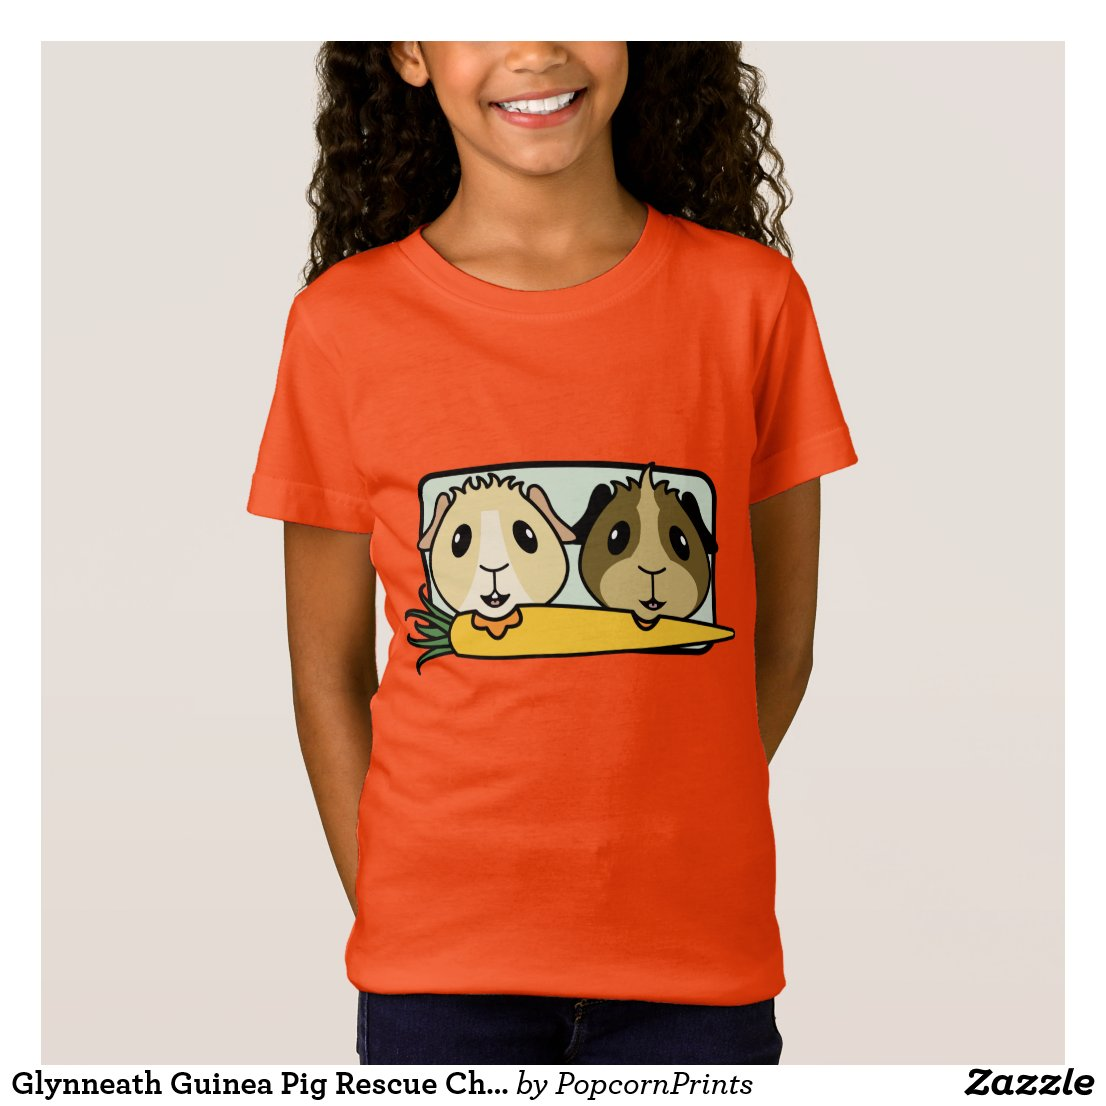 Glynneath Guinea Pig Rescue Children's T-Shirt